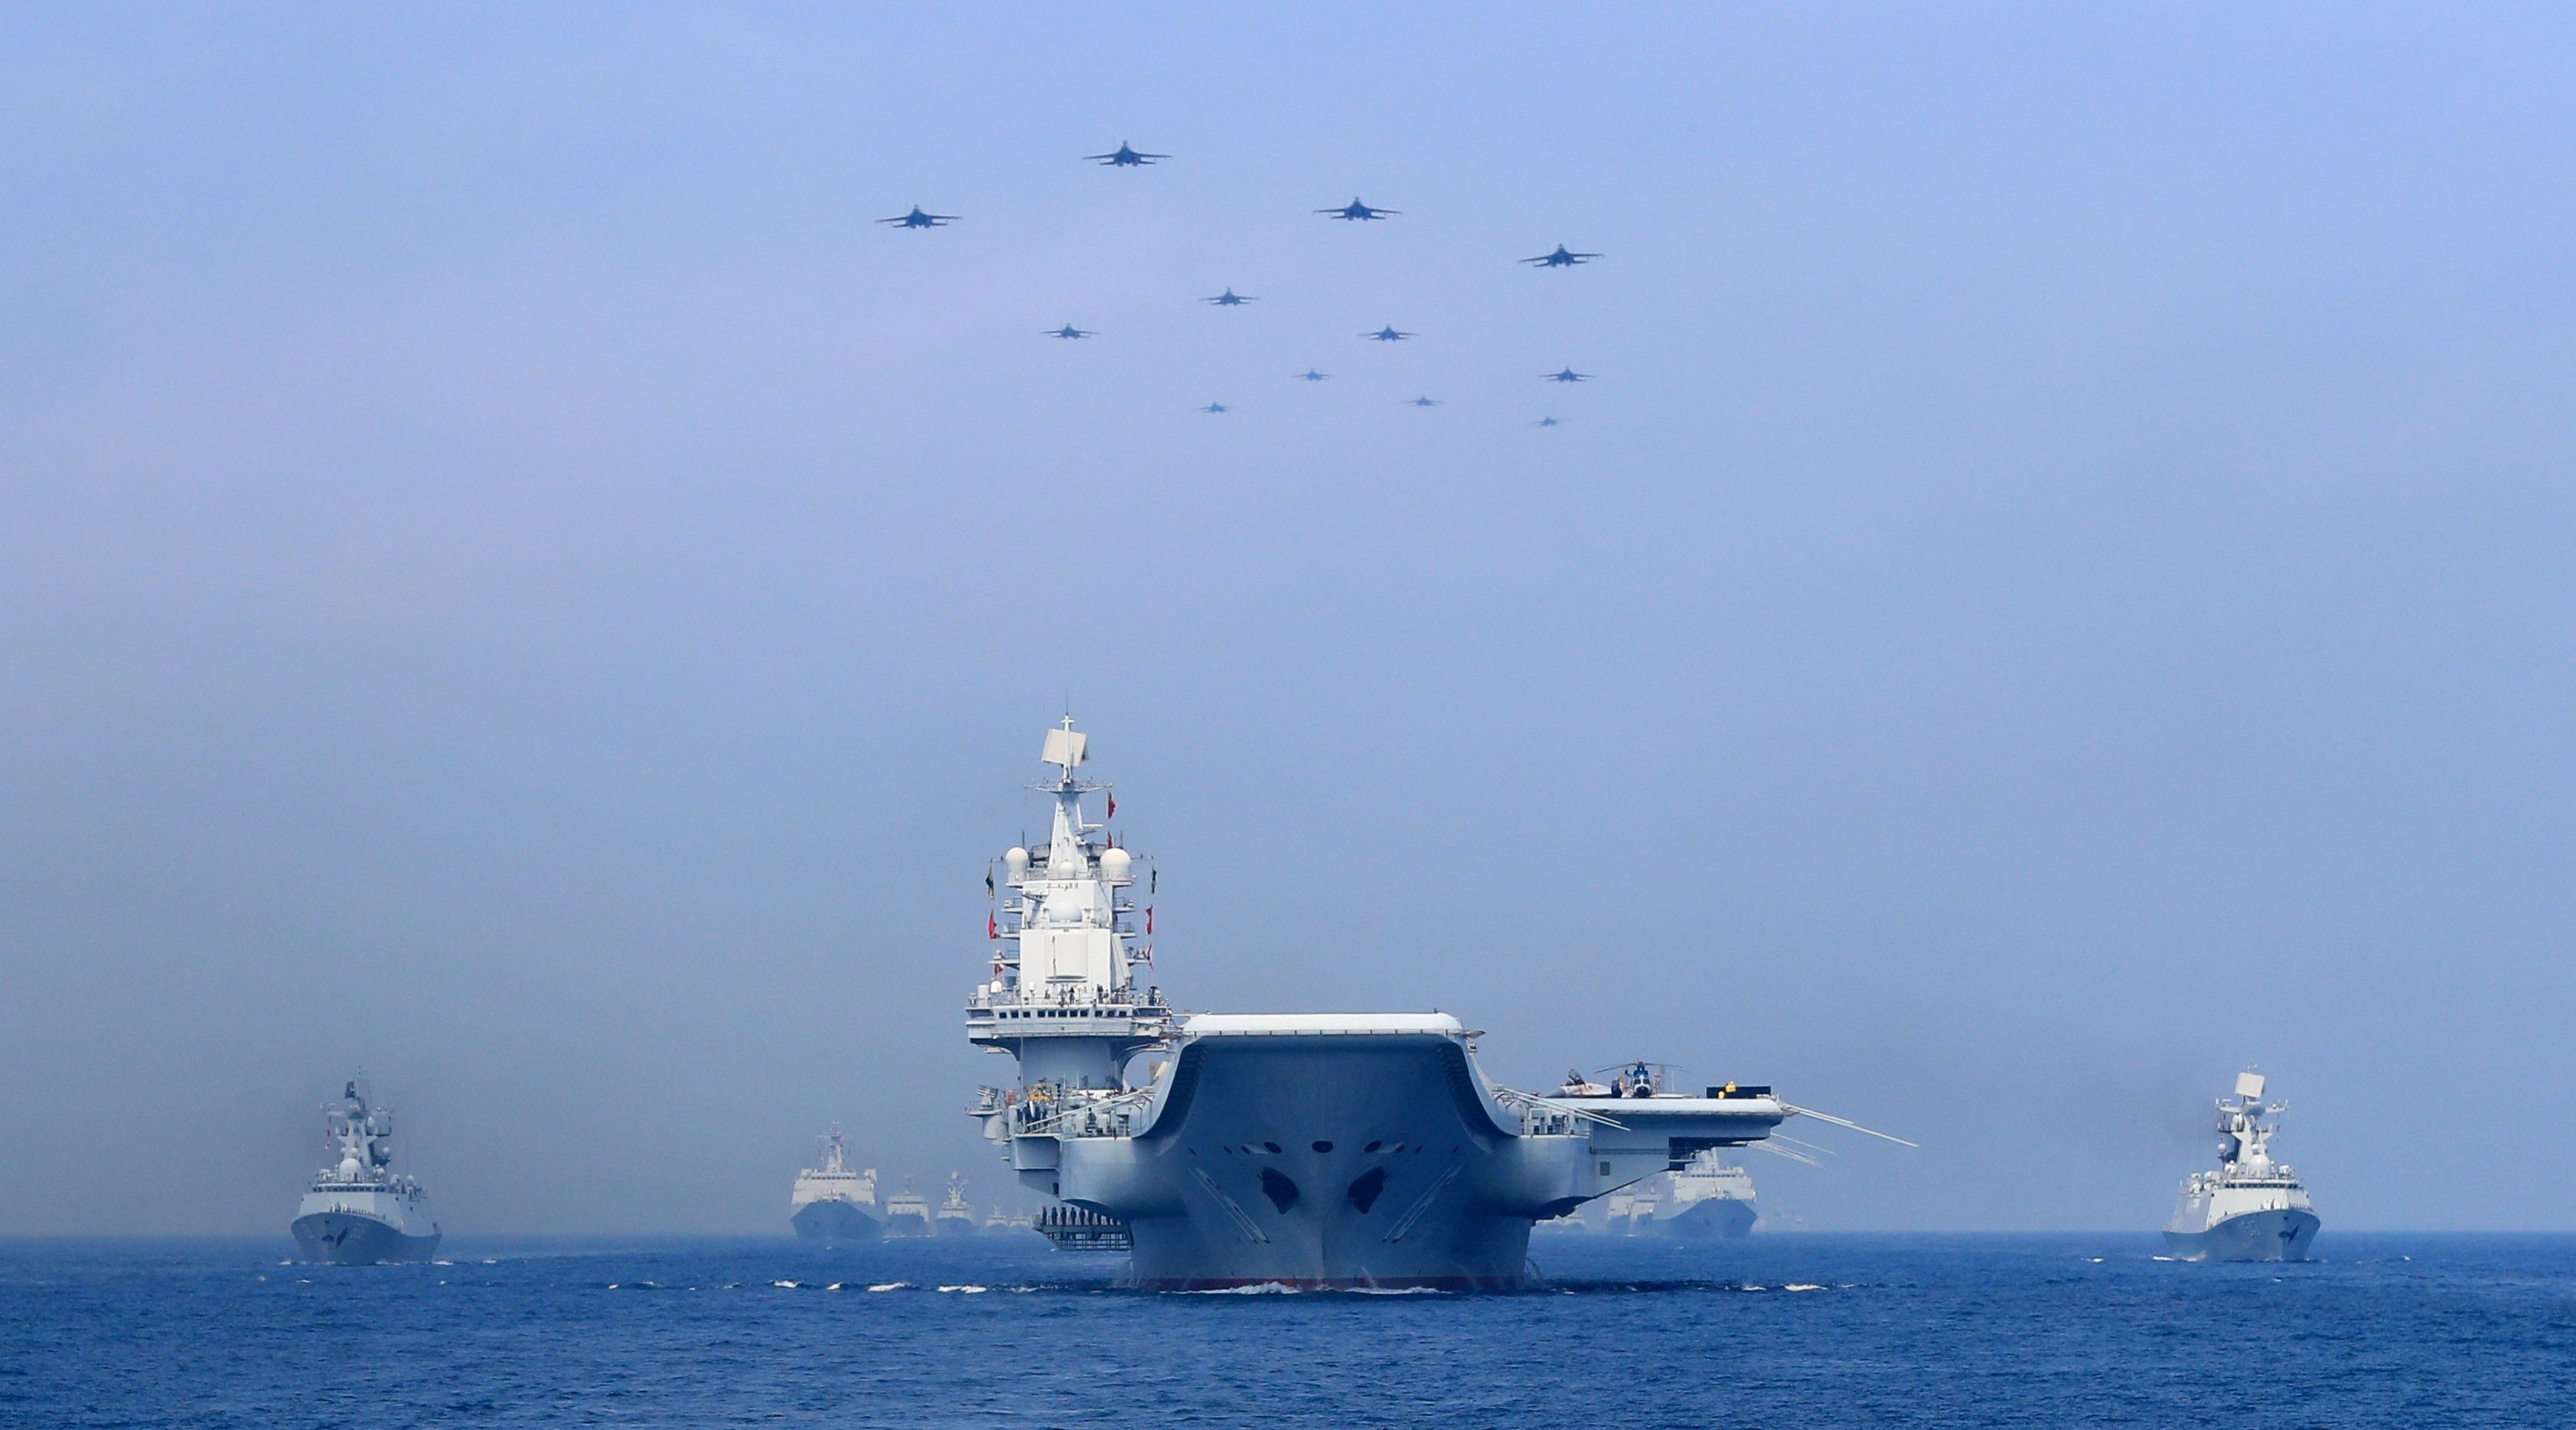 Warships and fighter jets of Chinese People's Liberation Army (PLA) Navy take part in a military display in the South China Sea April 12, 2018. Picture taken April 12, 2018.